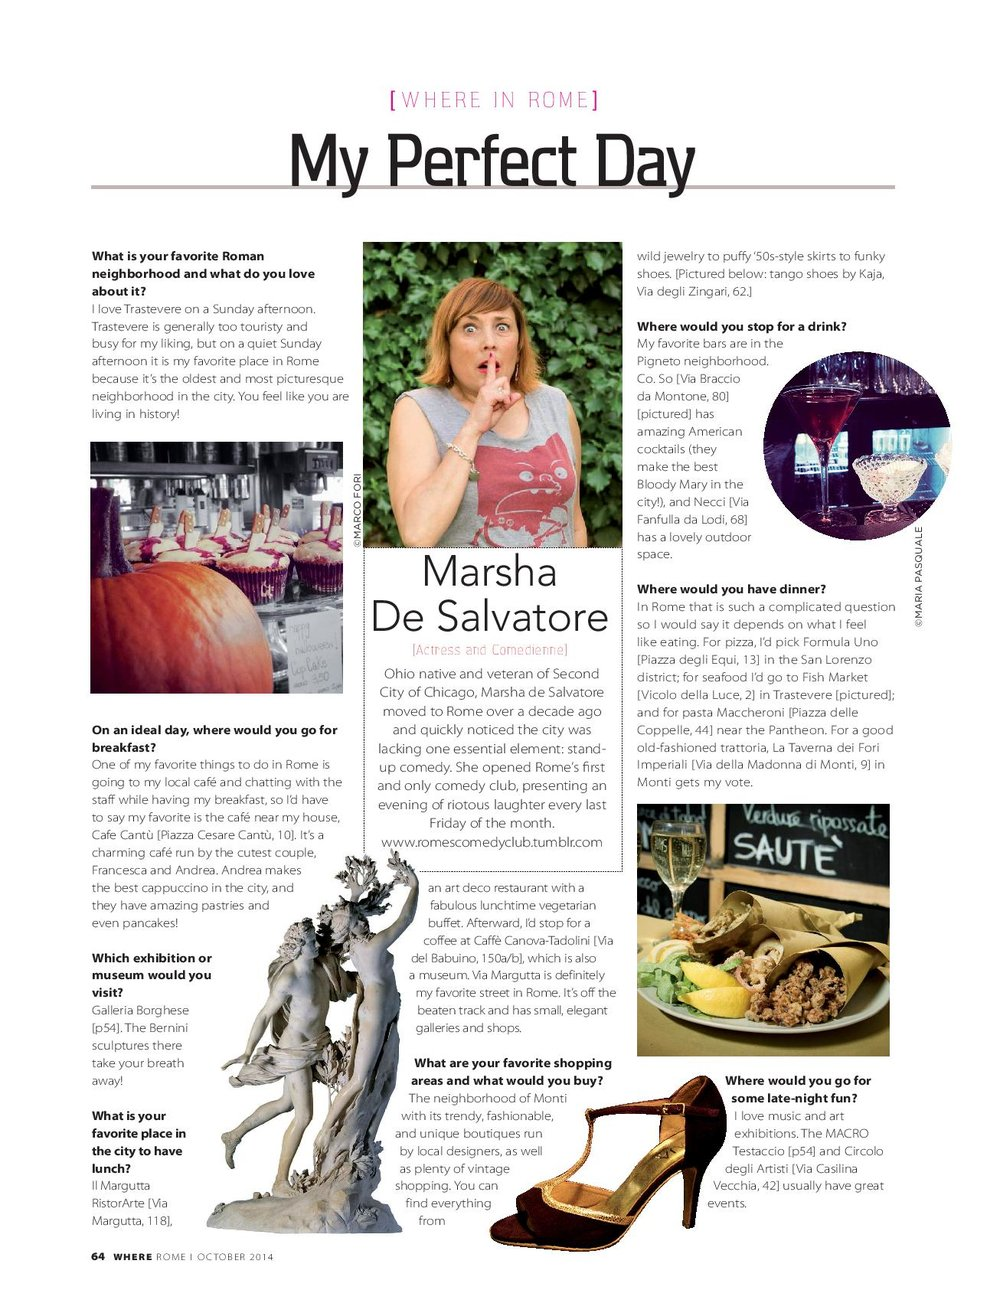 My Perfect Day - Marsha de Salvatore, October 2014-page-001.jpg